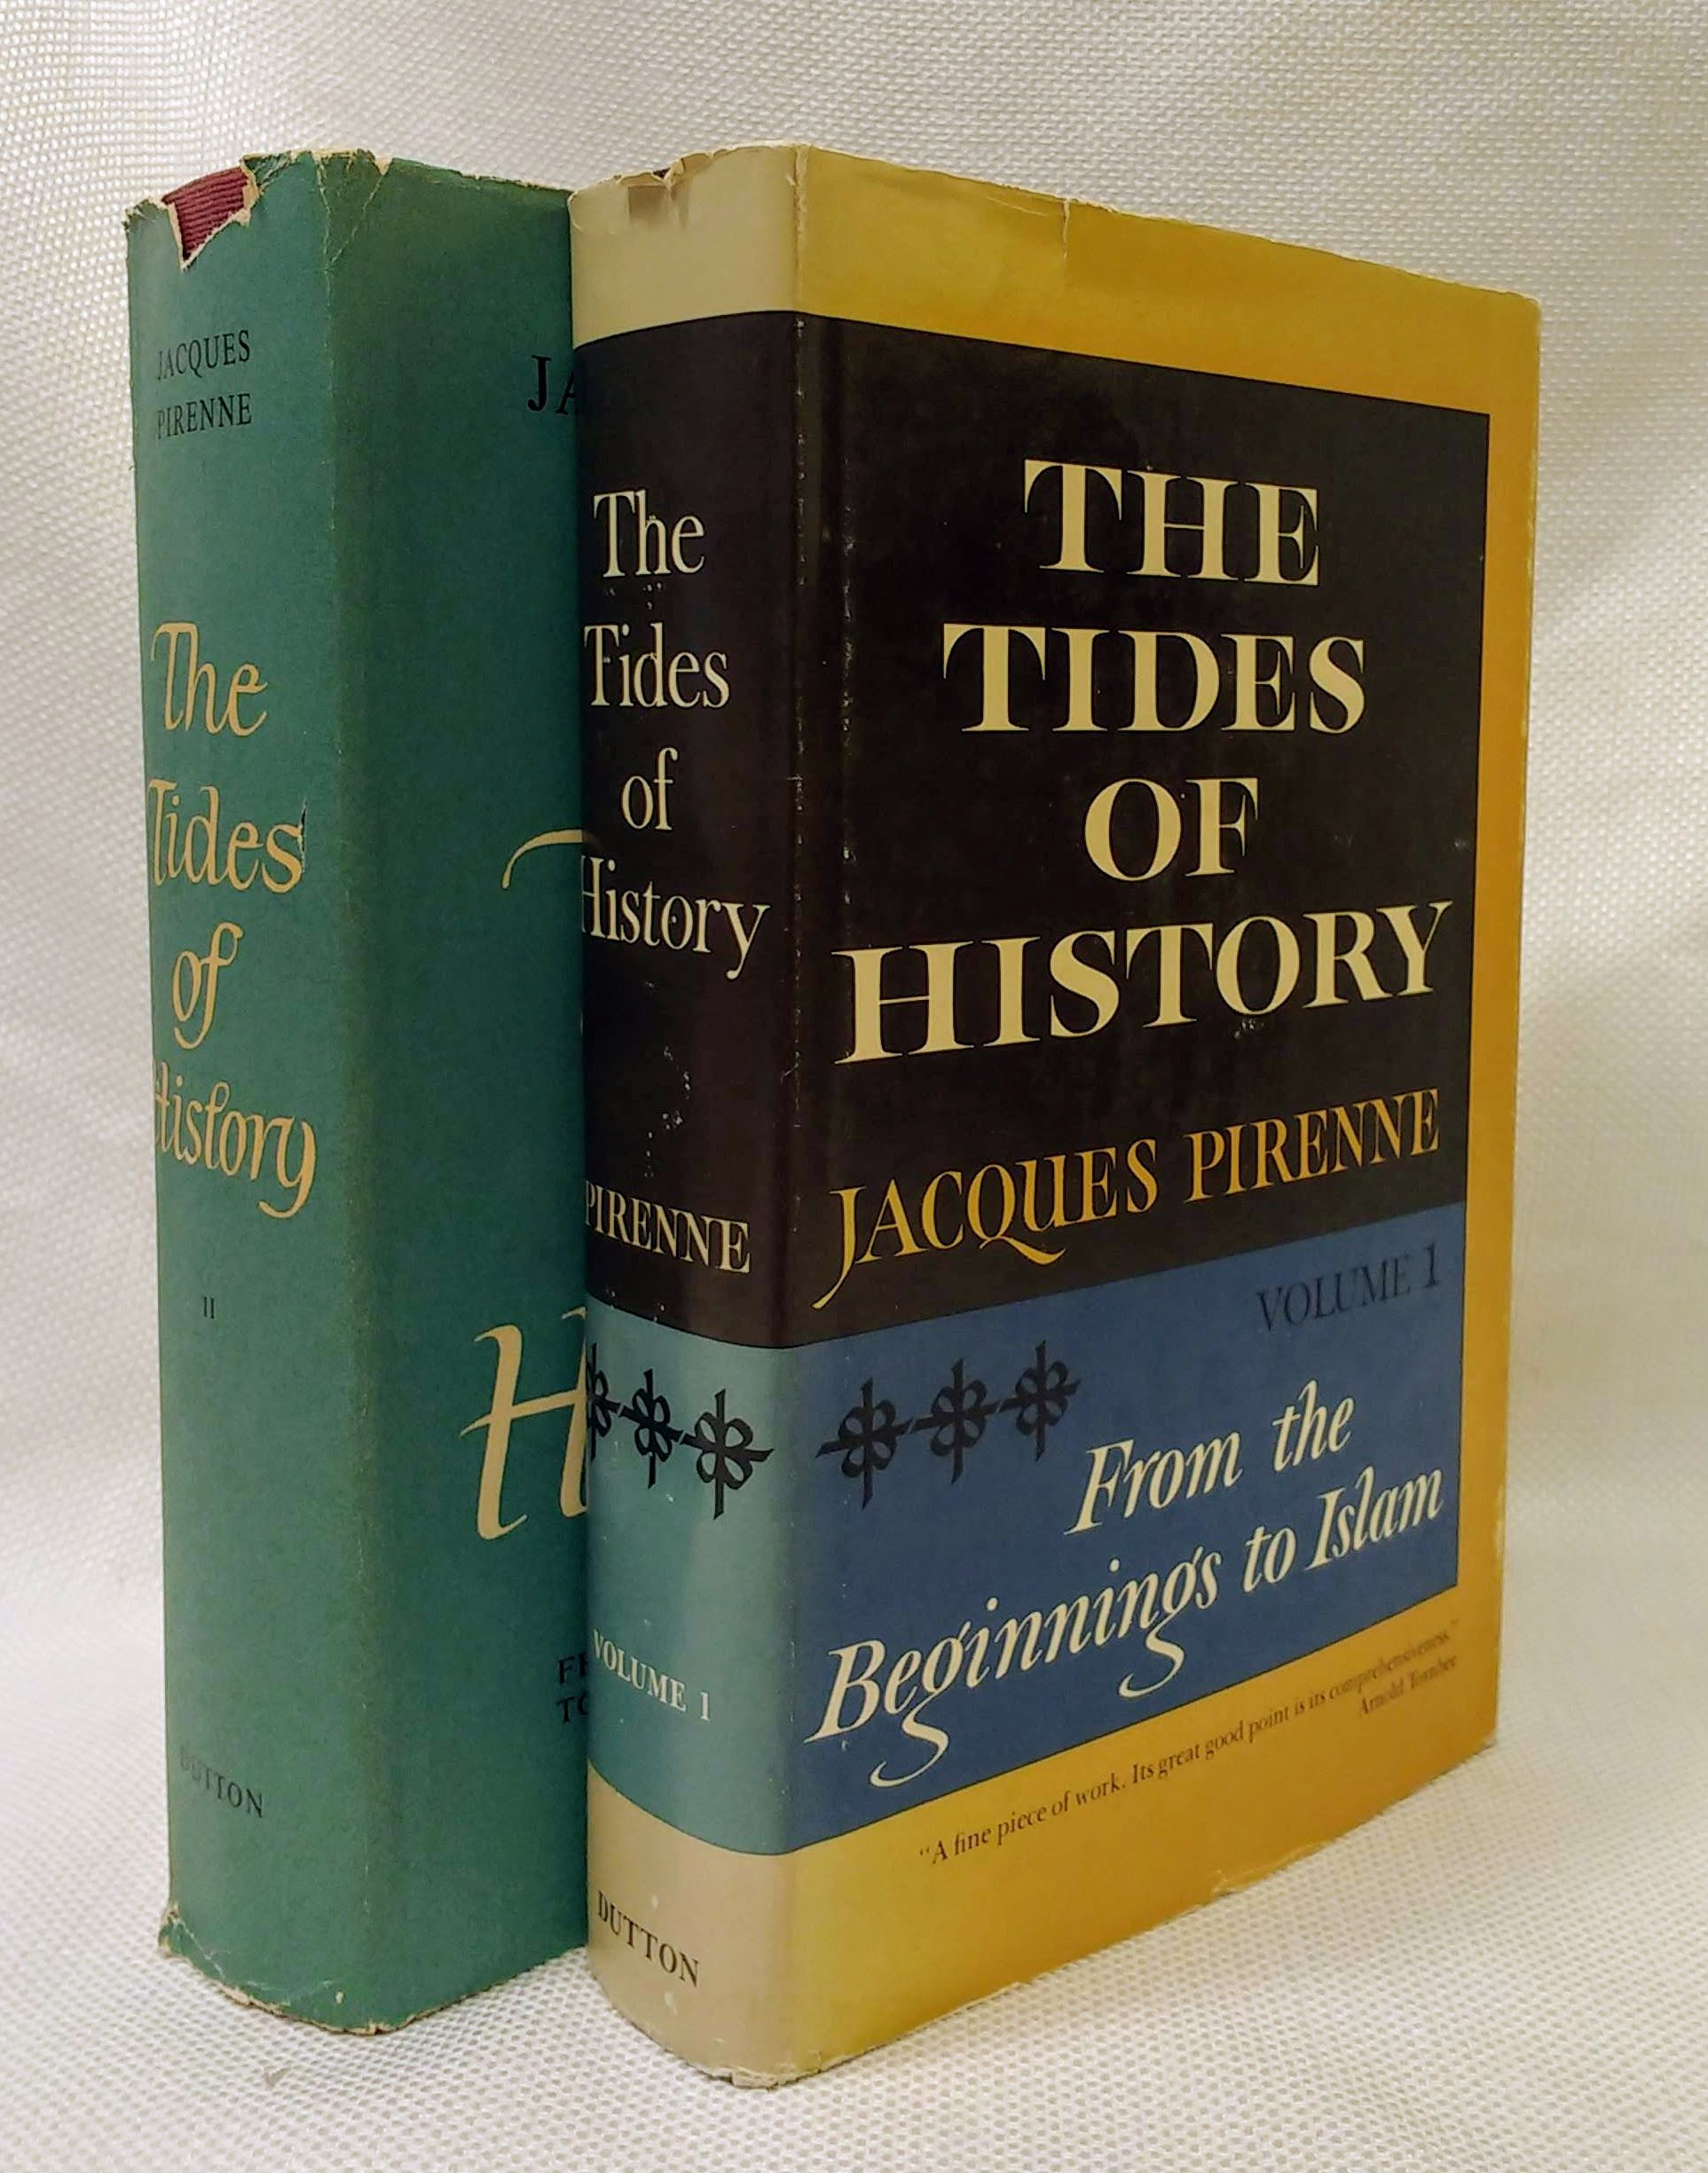 THE TIDES OF HISTORY VOLUMES I & II, Jacques Pirenne